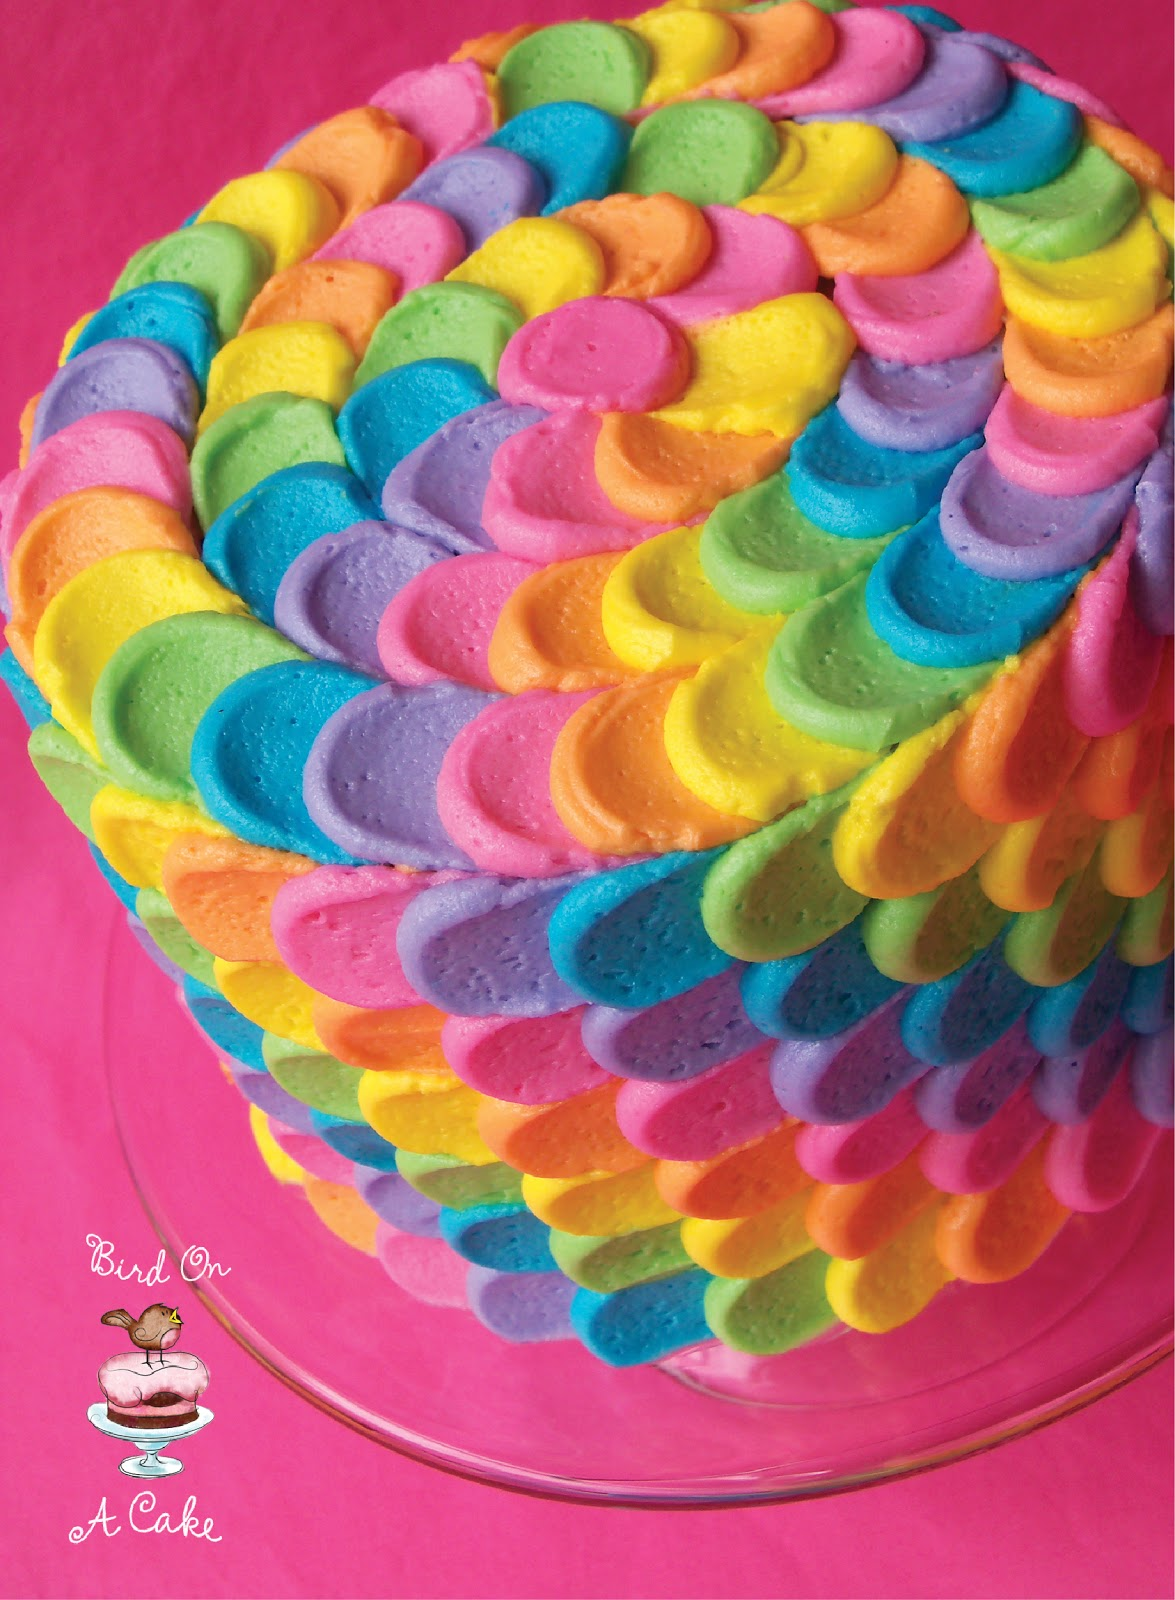 bird on a cake rainbow petal cake virtual baby shower. Black Bedroom Furniture Sets. Home Design Ideas